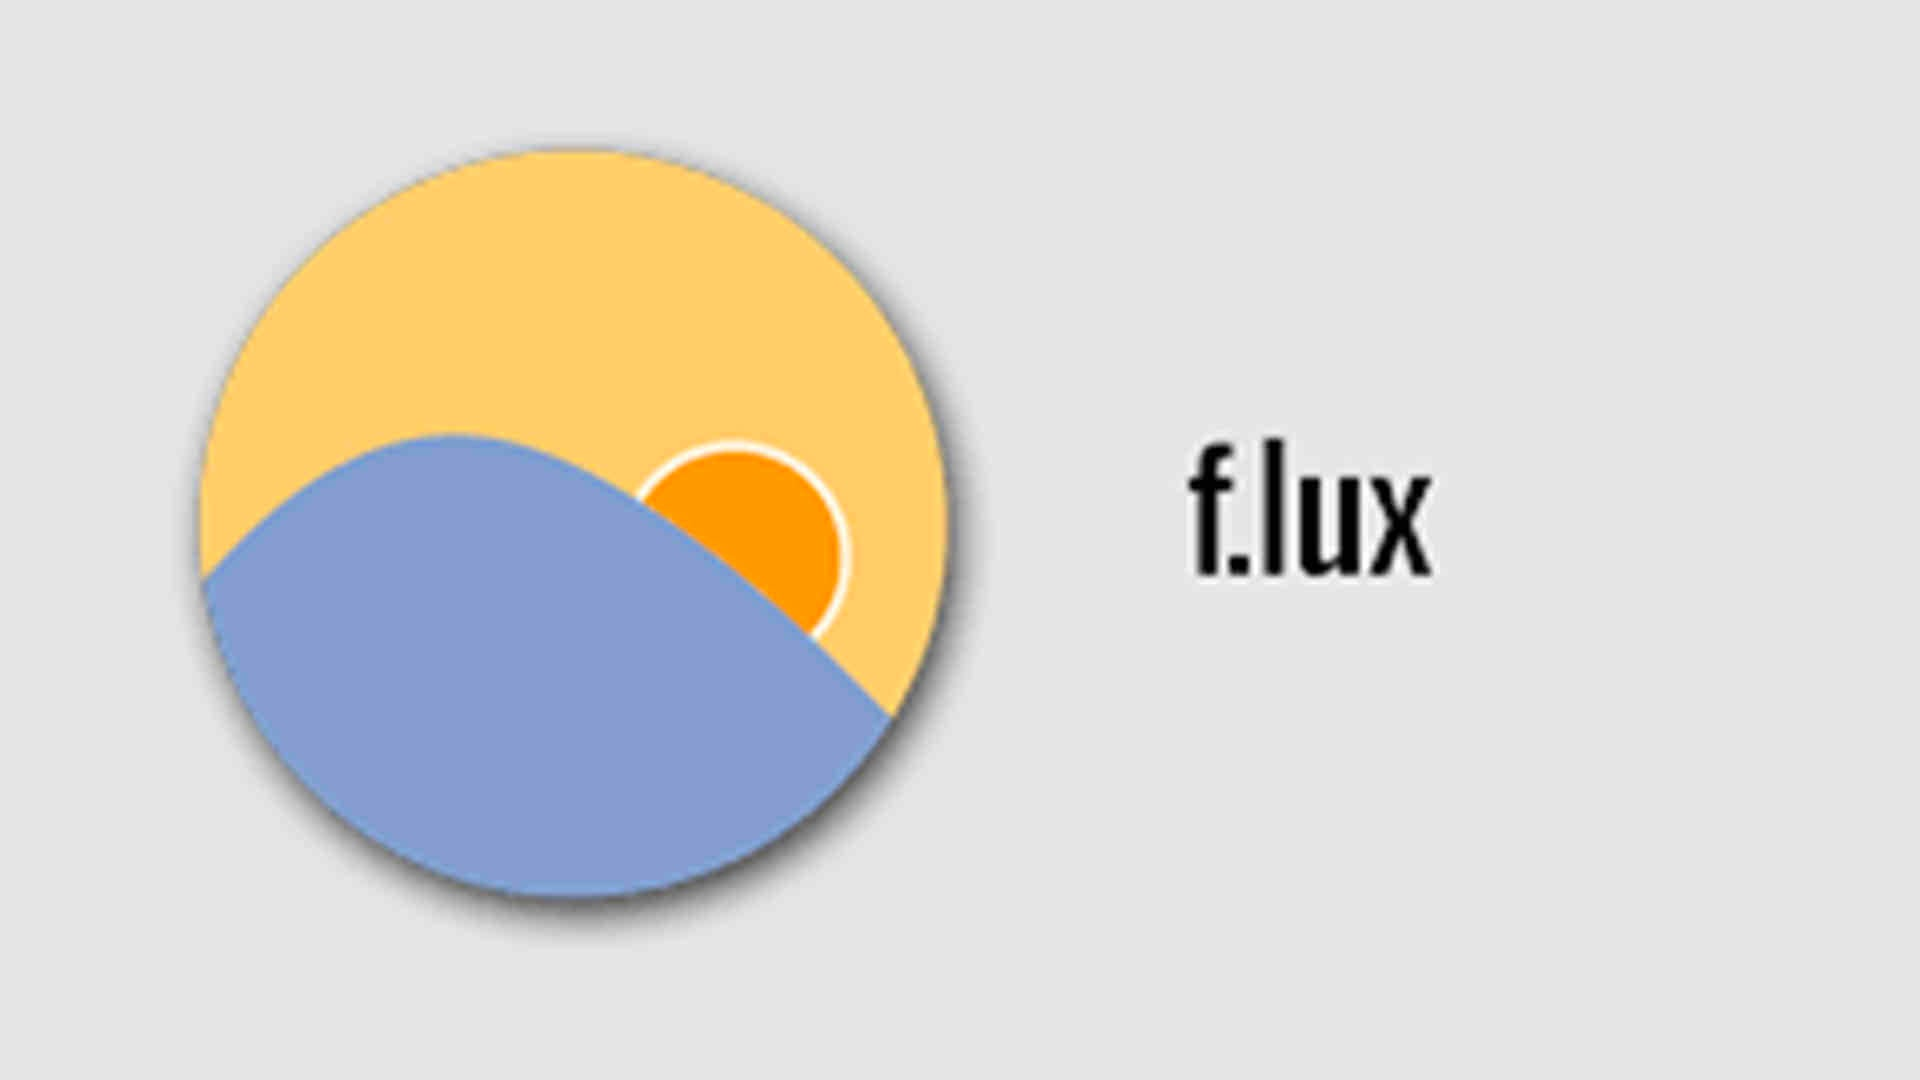 f.lux for sleep and blue light